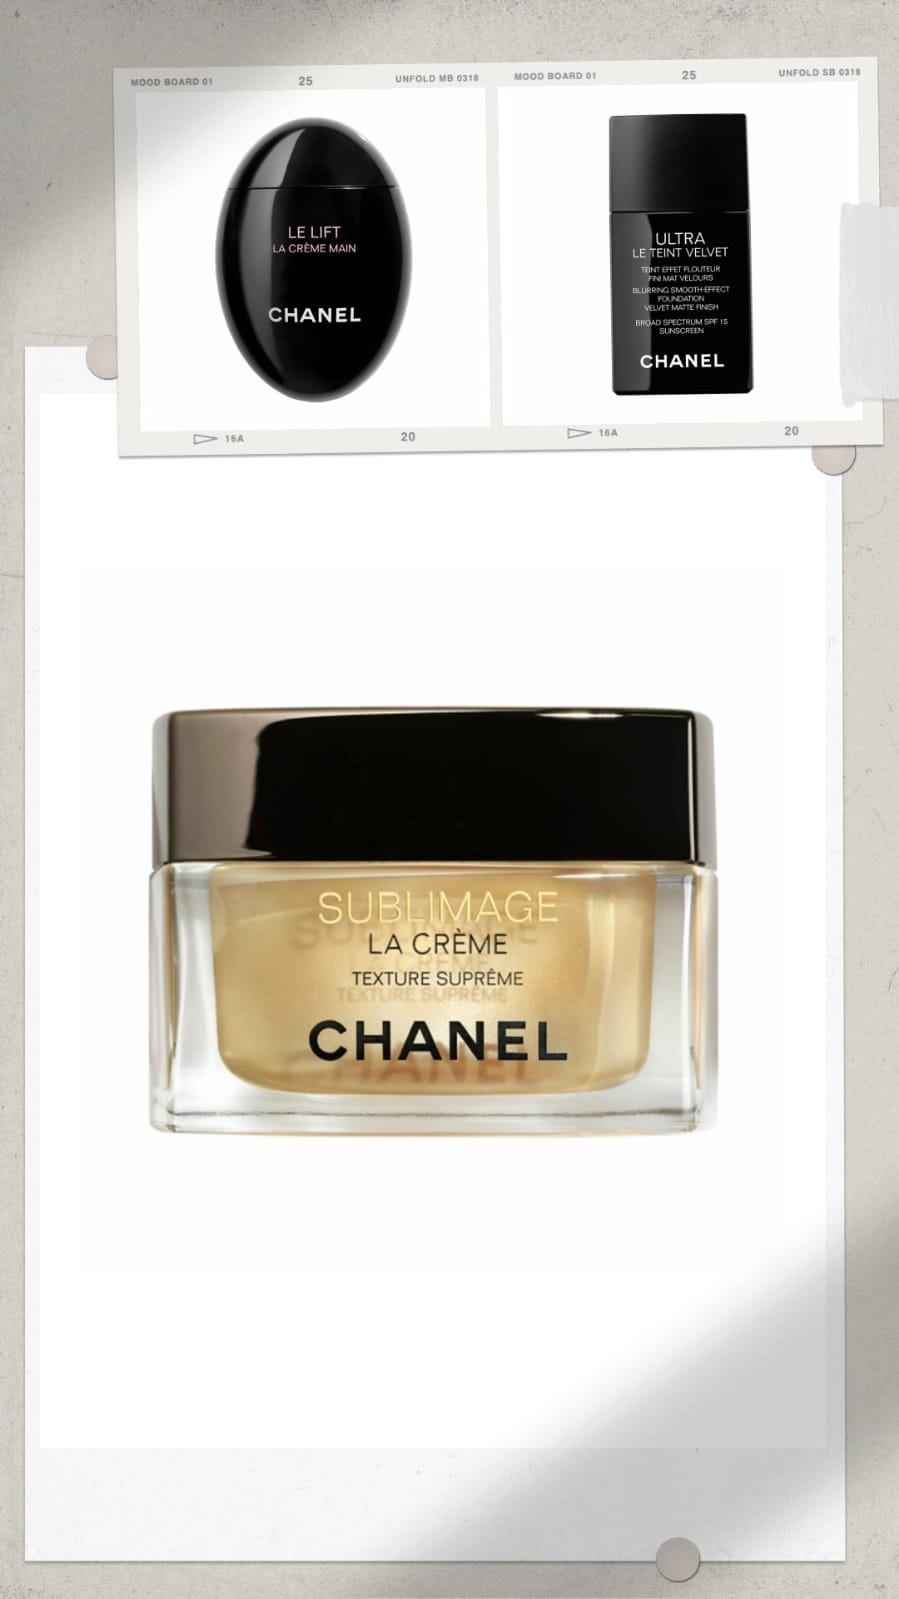 Chanel Skincare Review